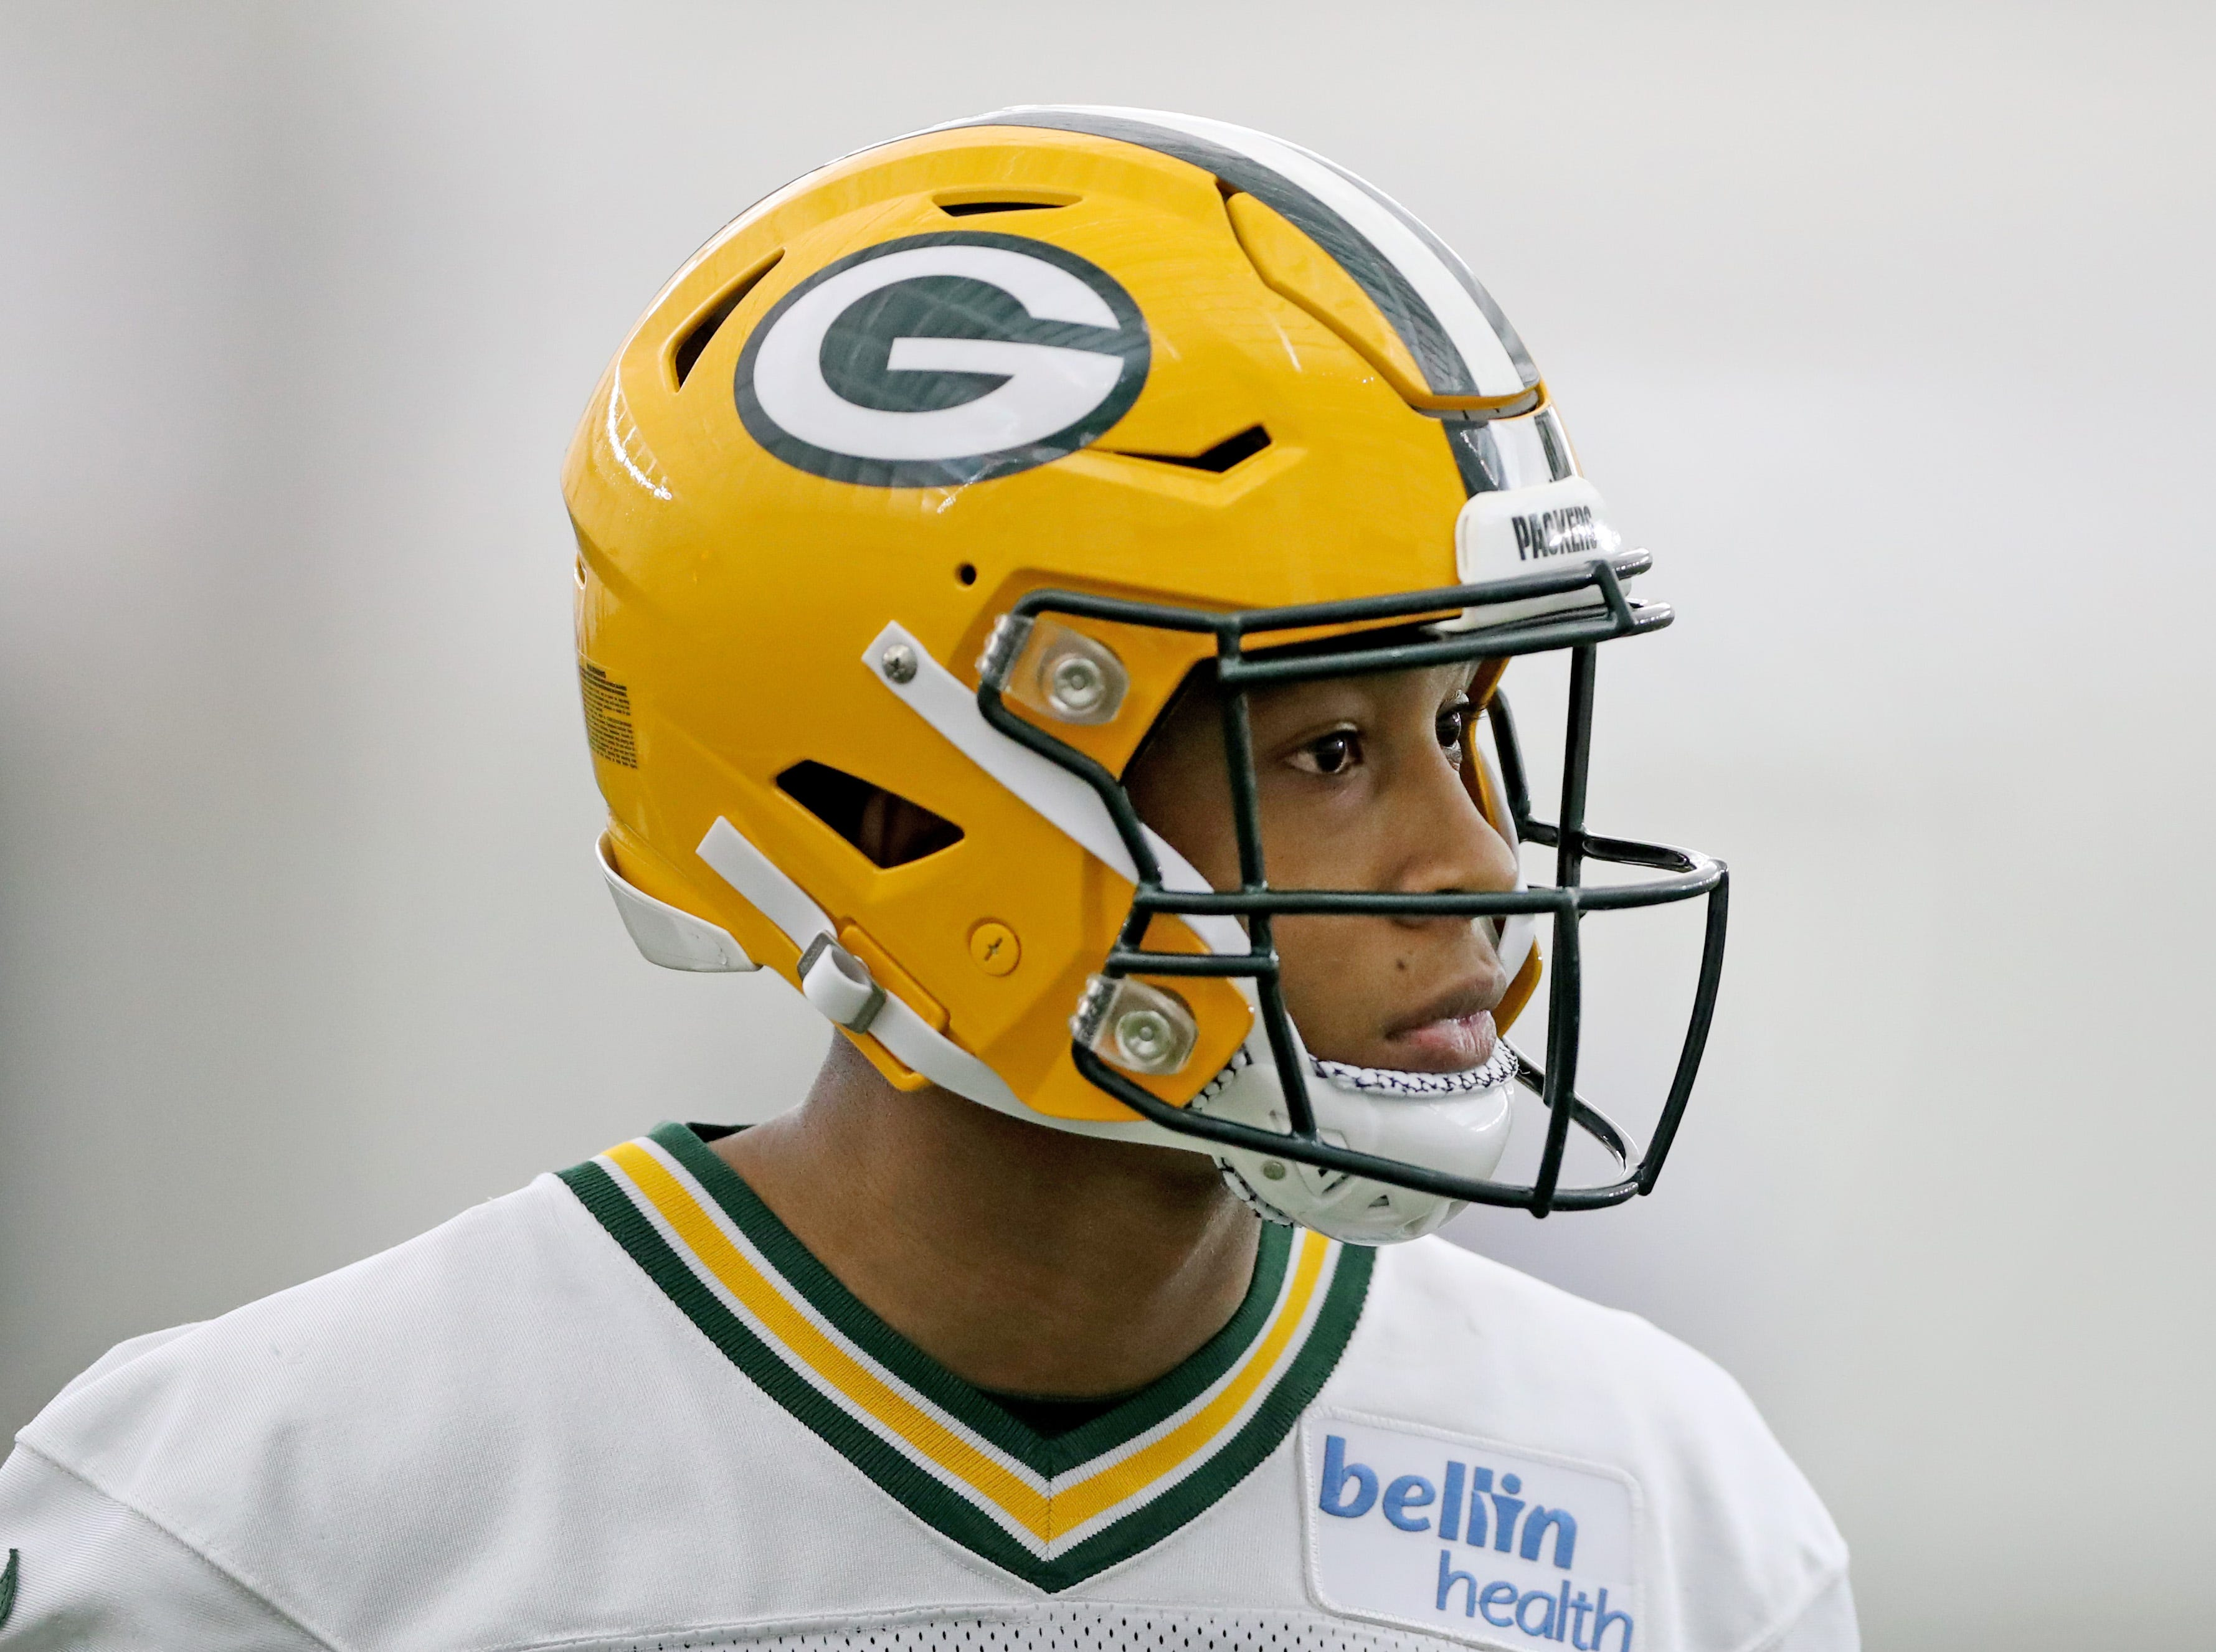 Green Bay Packers wide receiver Teo Redding (88) during practice Wednesday, November 21, 2018 inside the Don Hutson Center in Ashwaubenon, Wis.